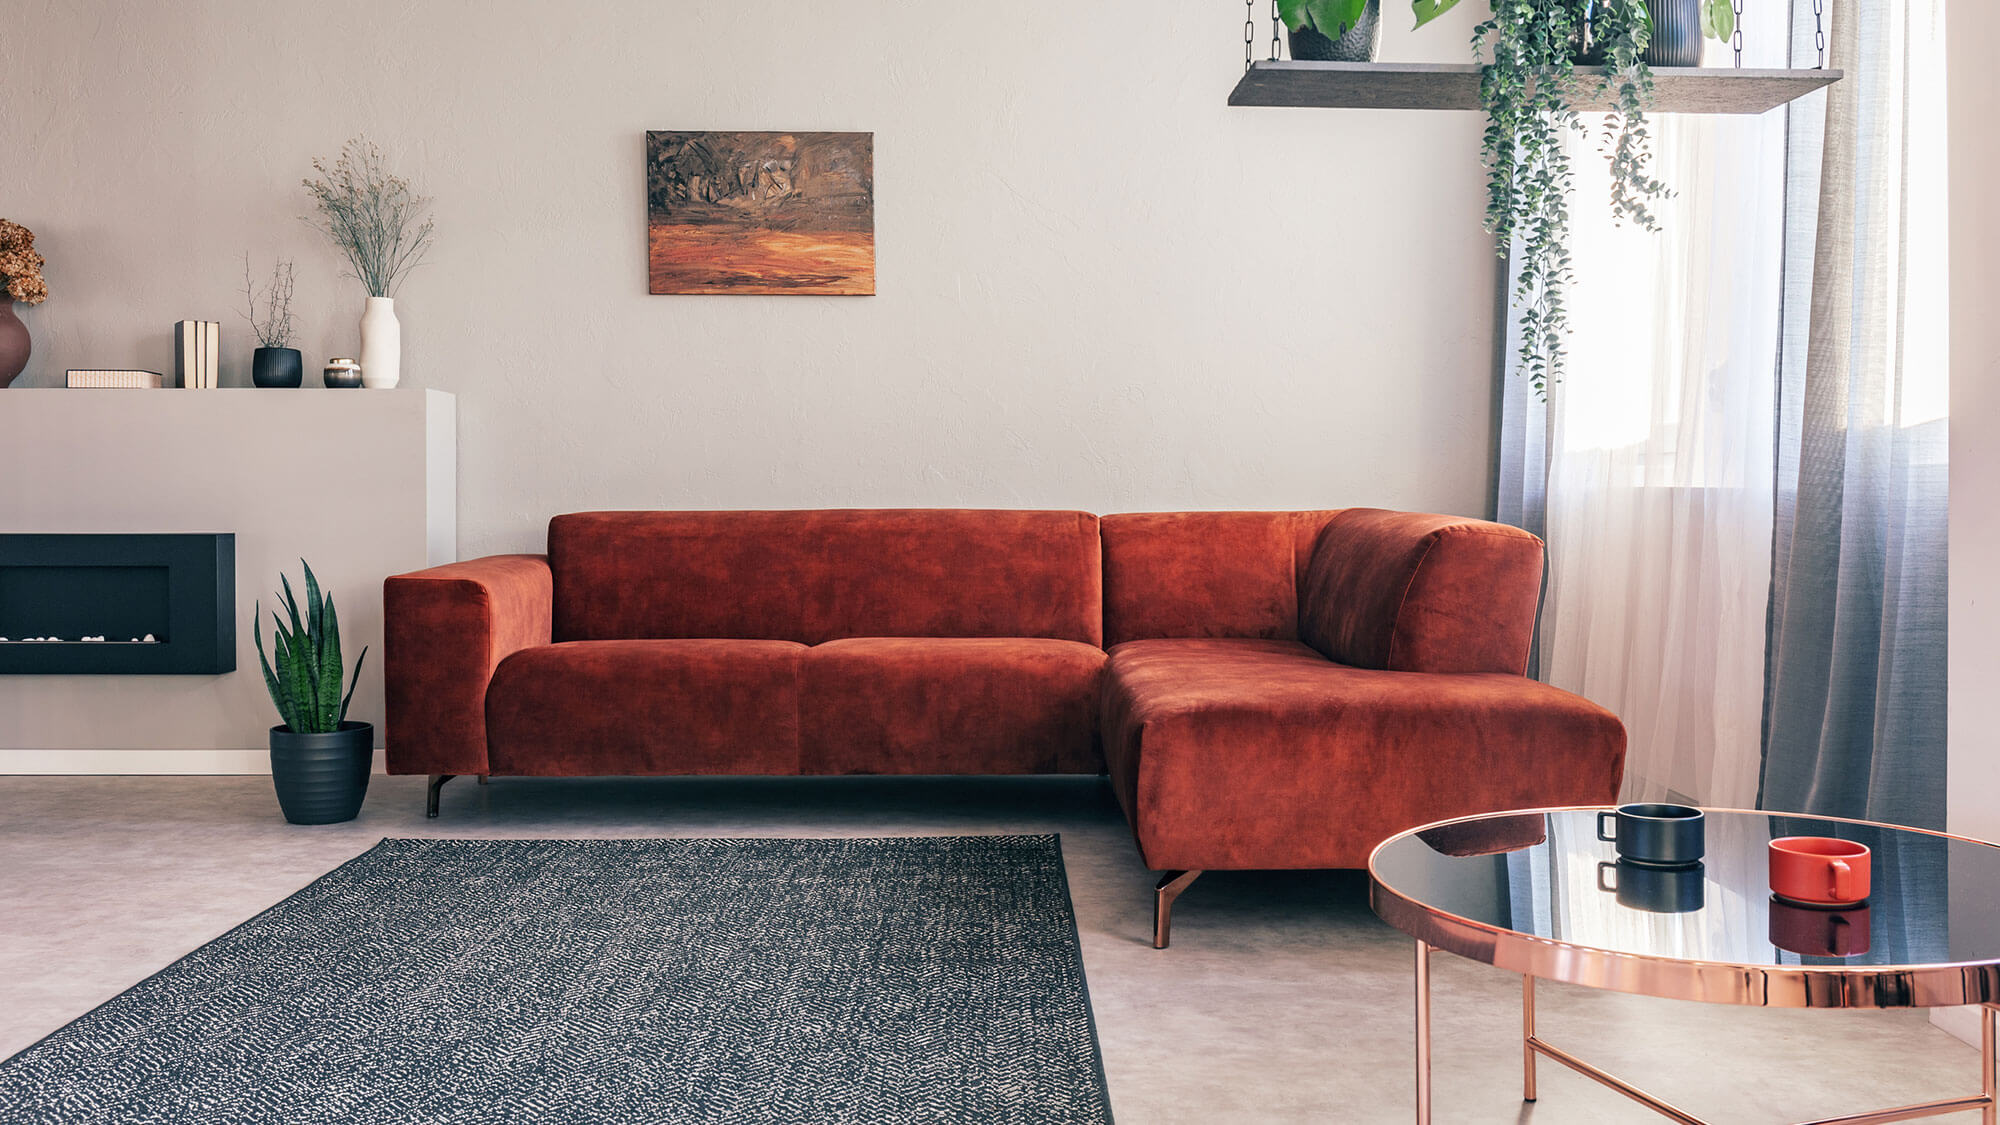 Upholstering Services